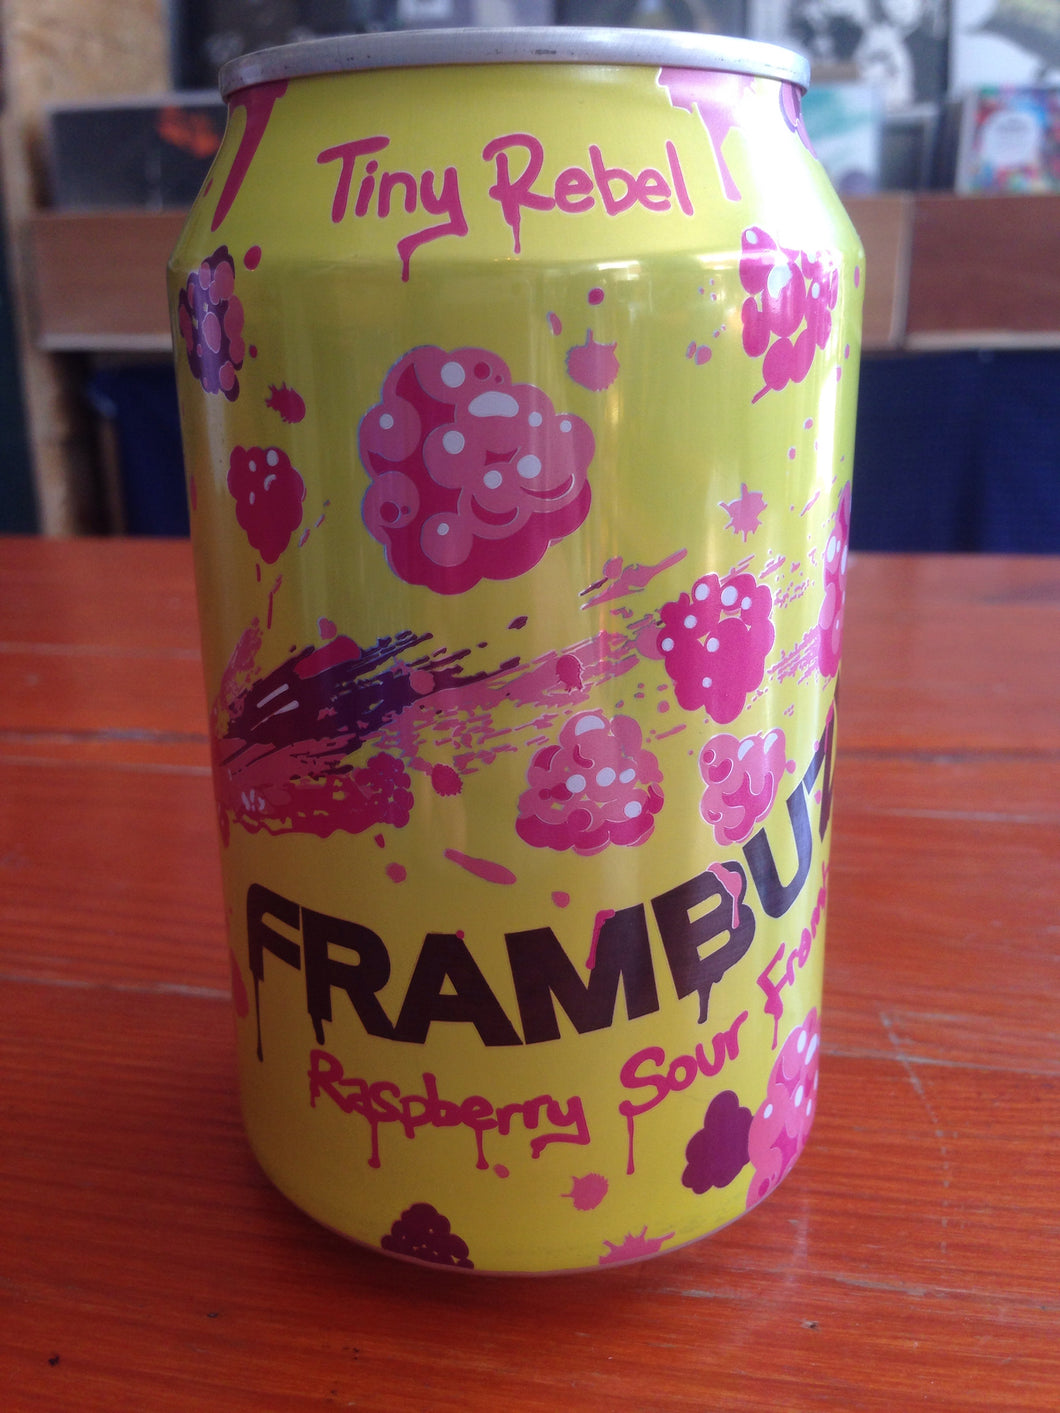 Tiny Rebel Frambuzi Rasberry